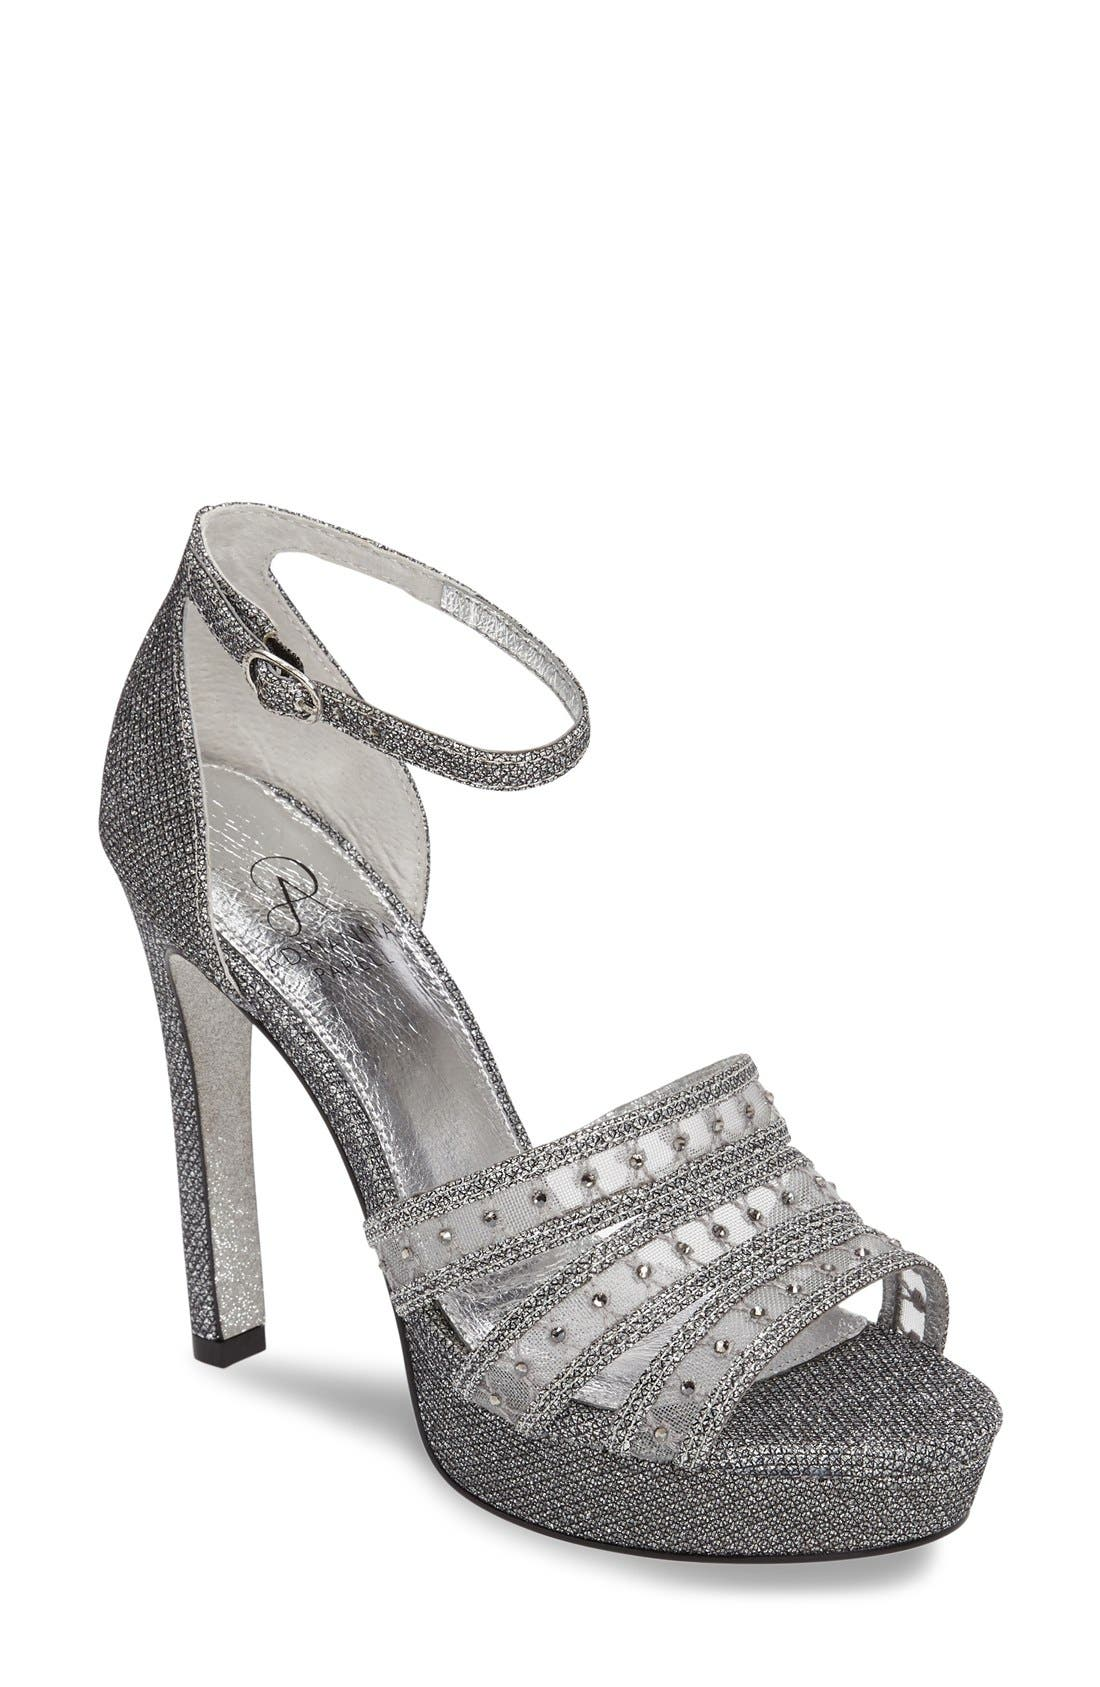 ADRIANNA PAPELL Morgan Platform Ankle Strap Sandal